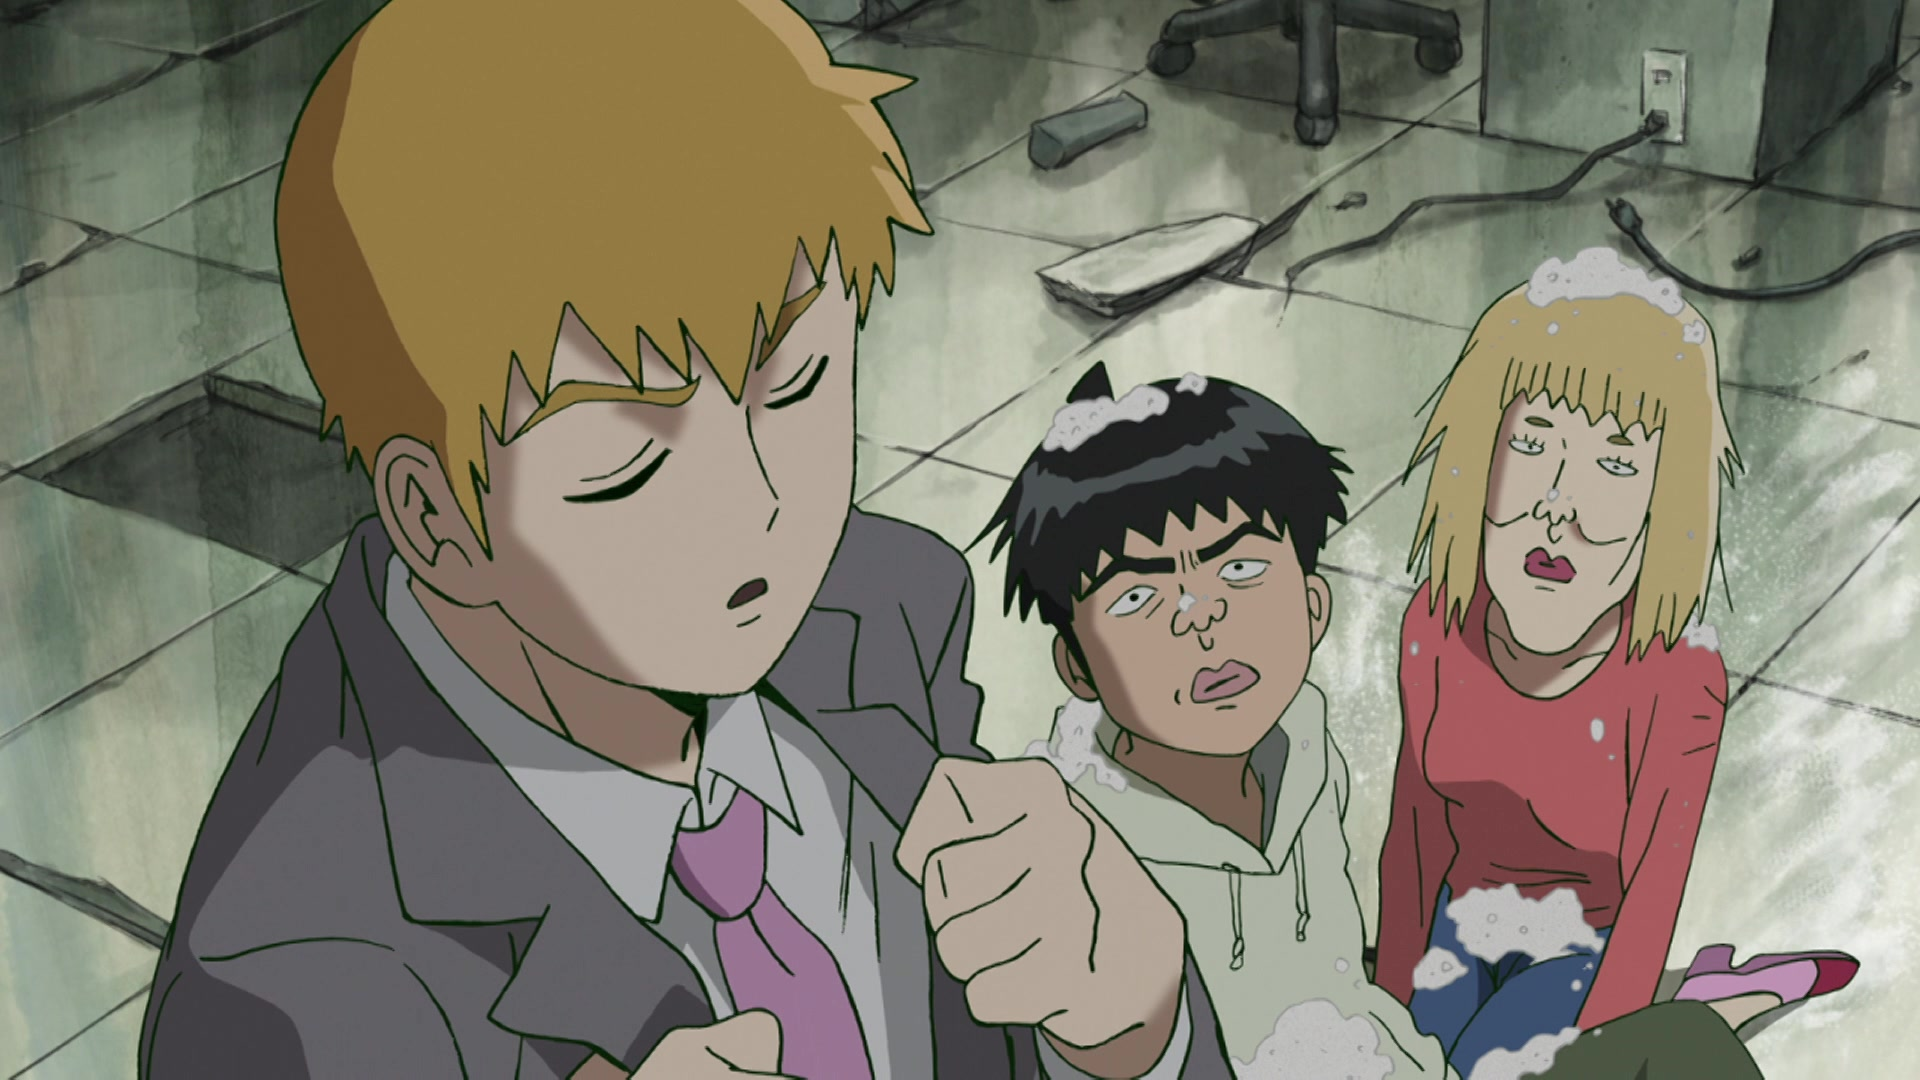 Mob Psycho 100 Episode 1, Self-Proclaimed Psychic: Reigen